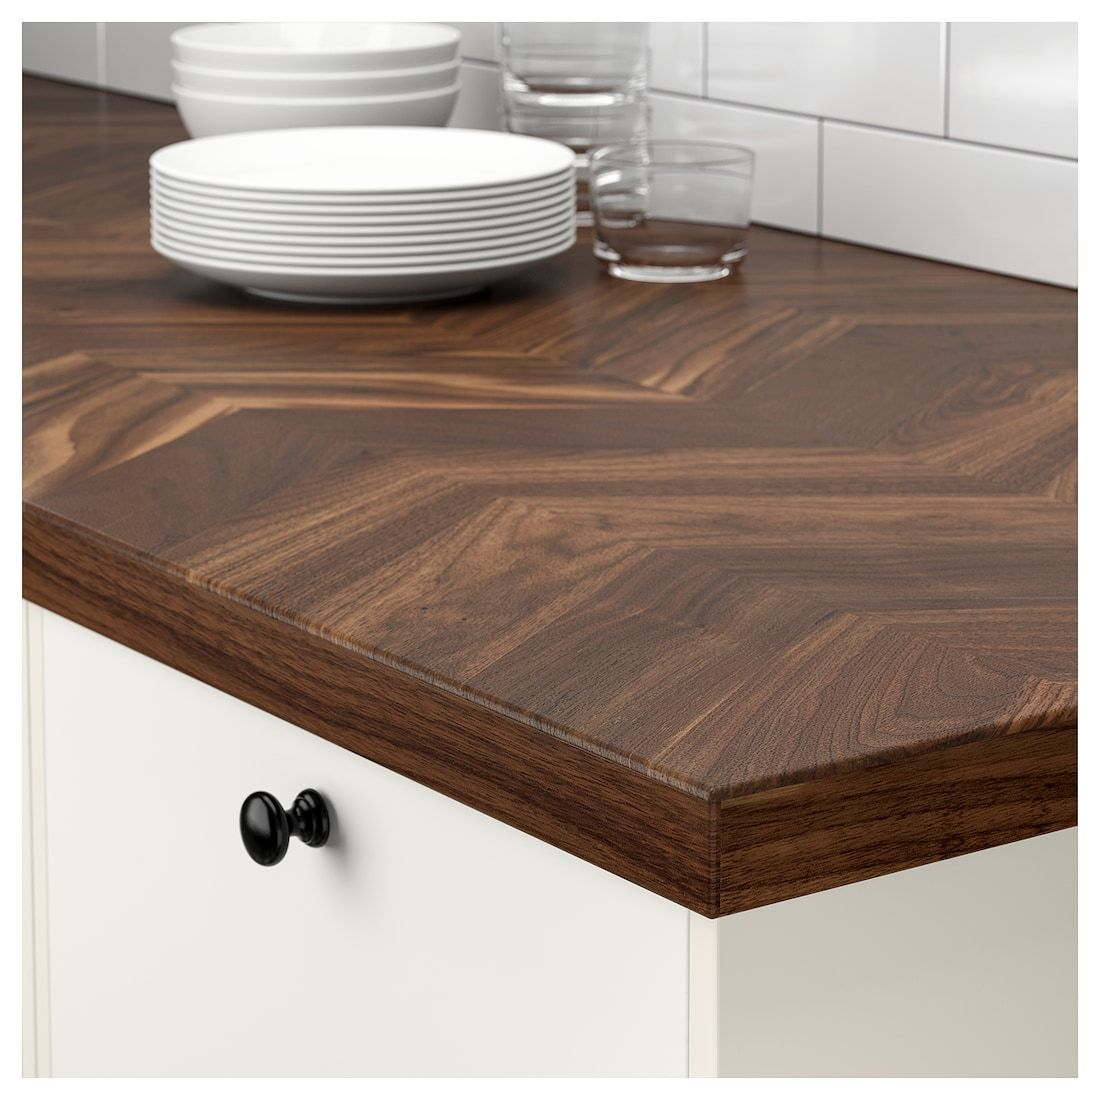 Barkaboda Countertop Walnut Veneer 74x1 1 2 Ikea Kitchen